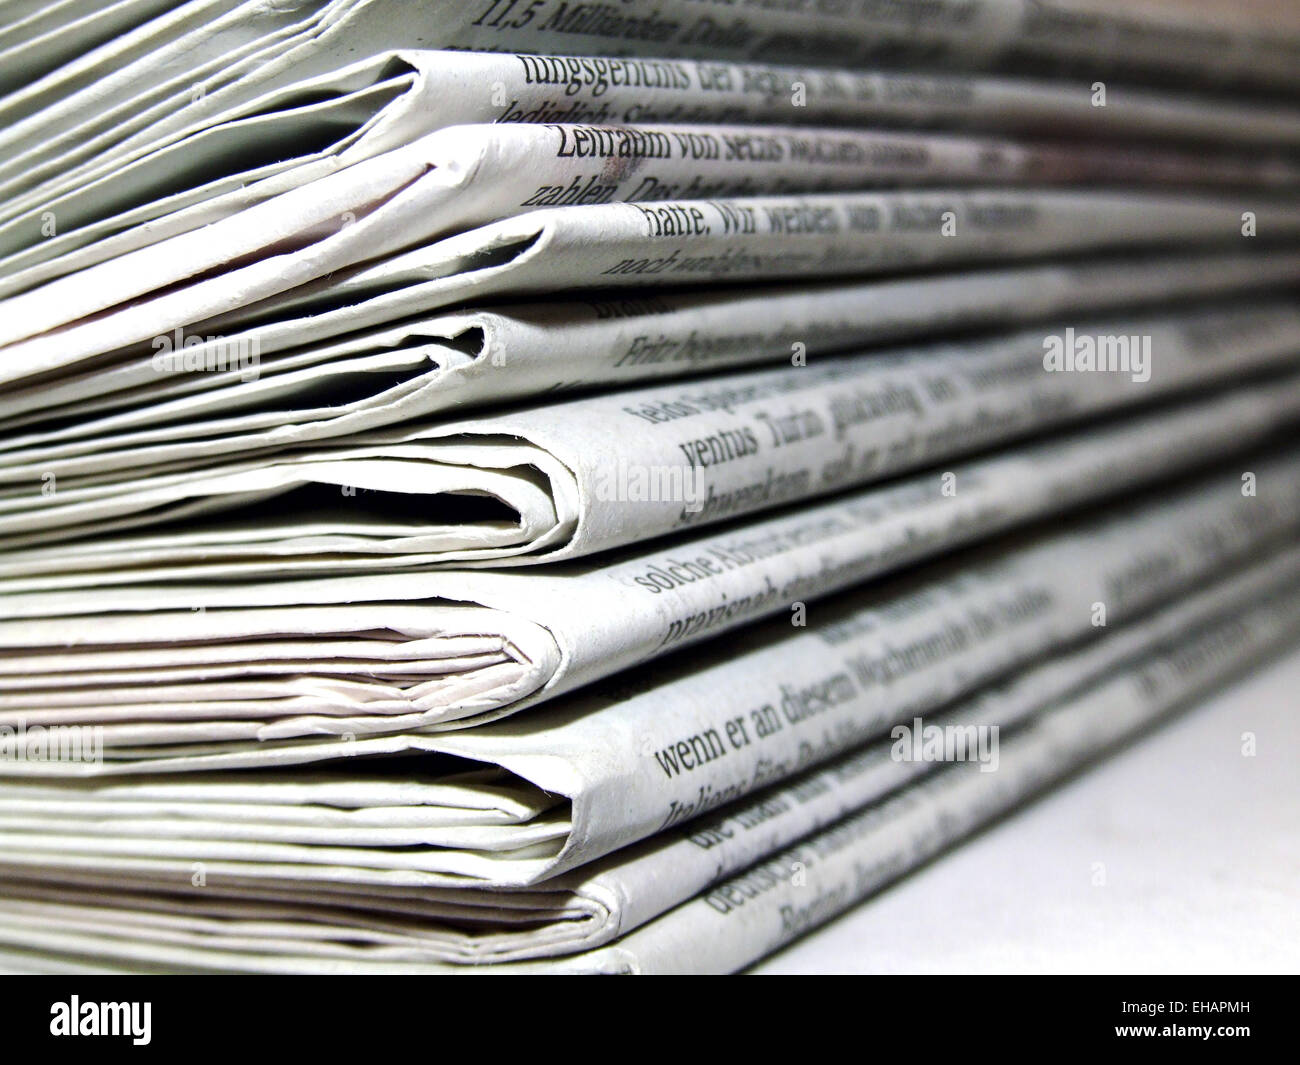 Stapel Zeitungen / newspapers Stock Photo